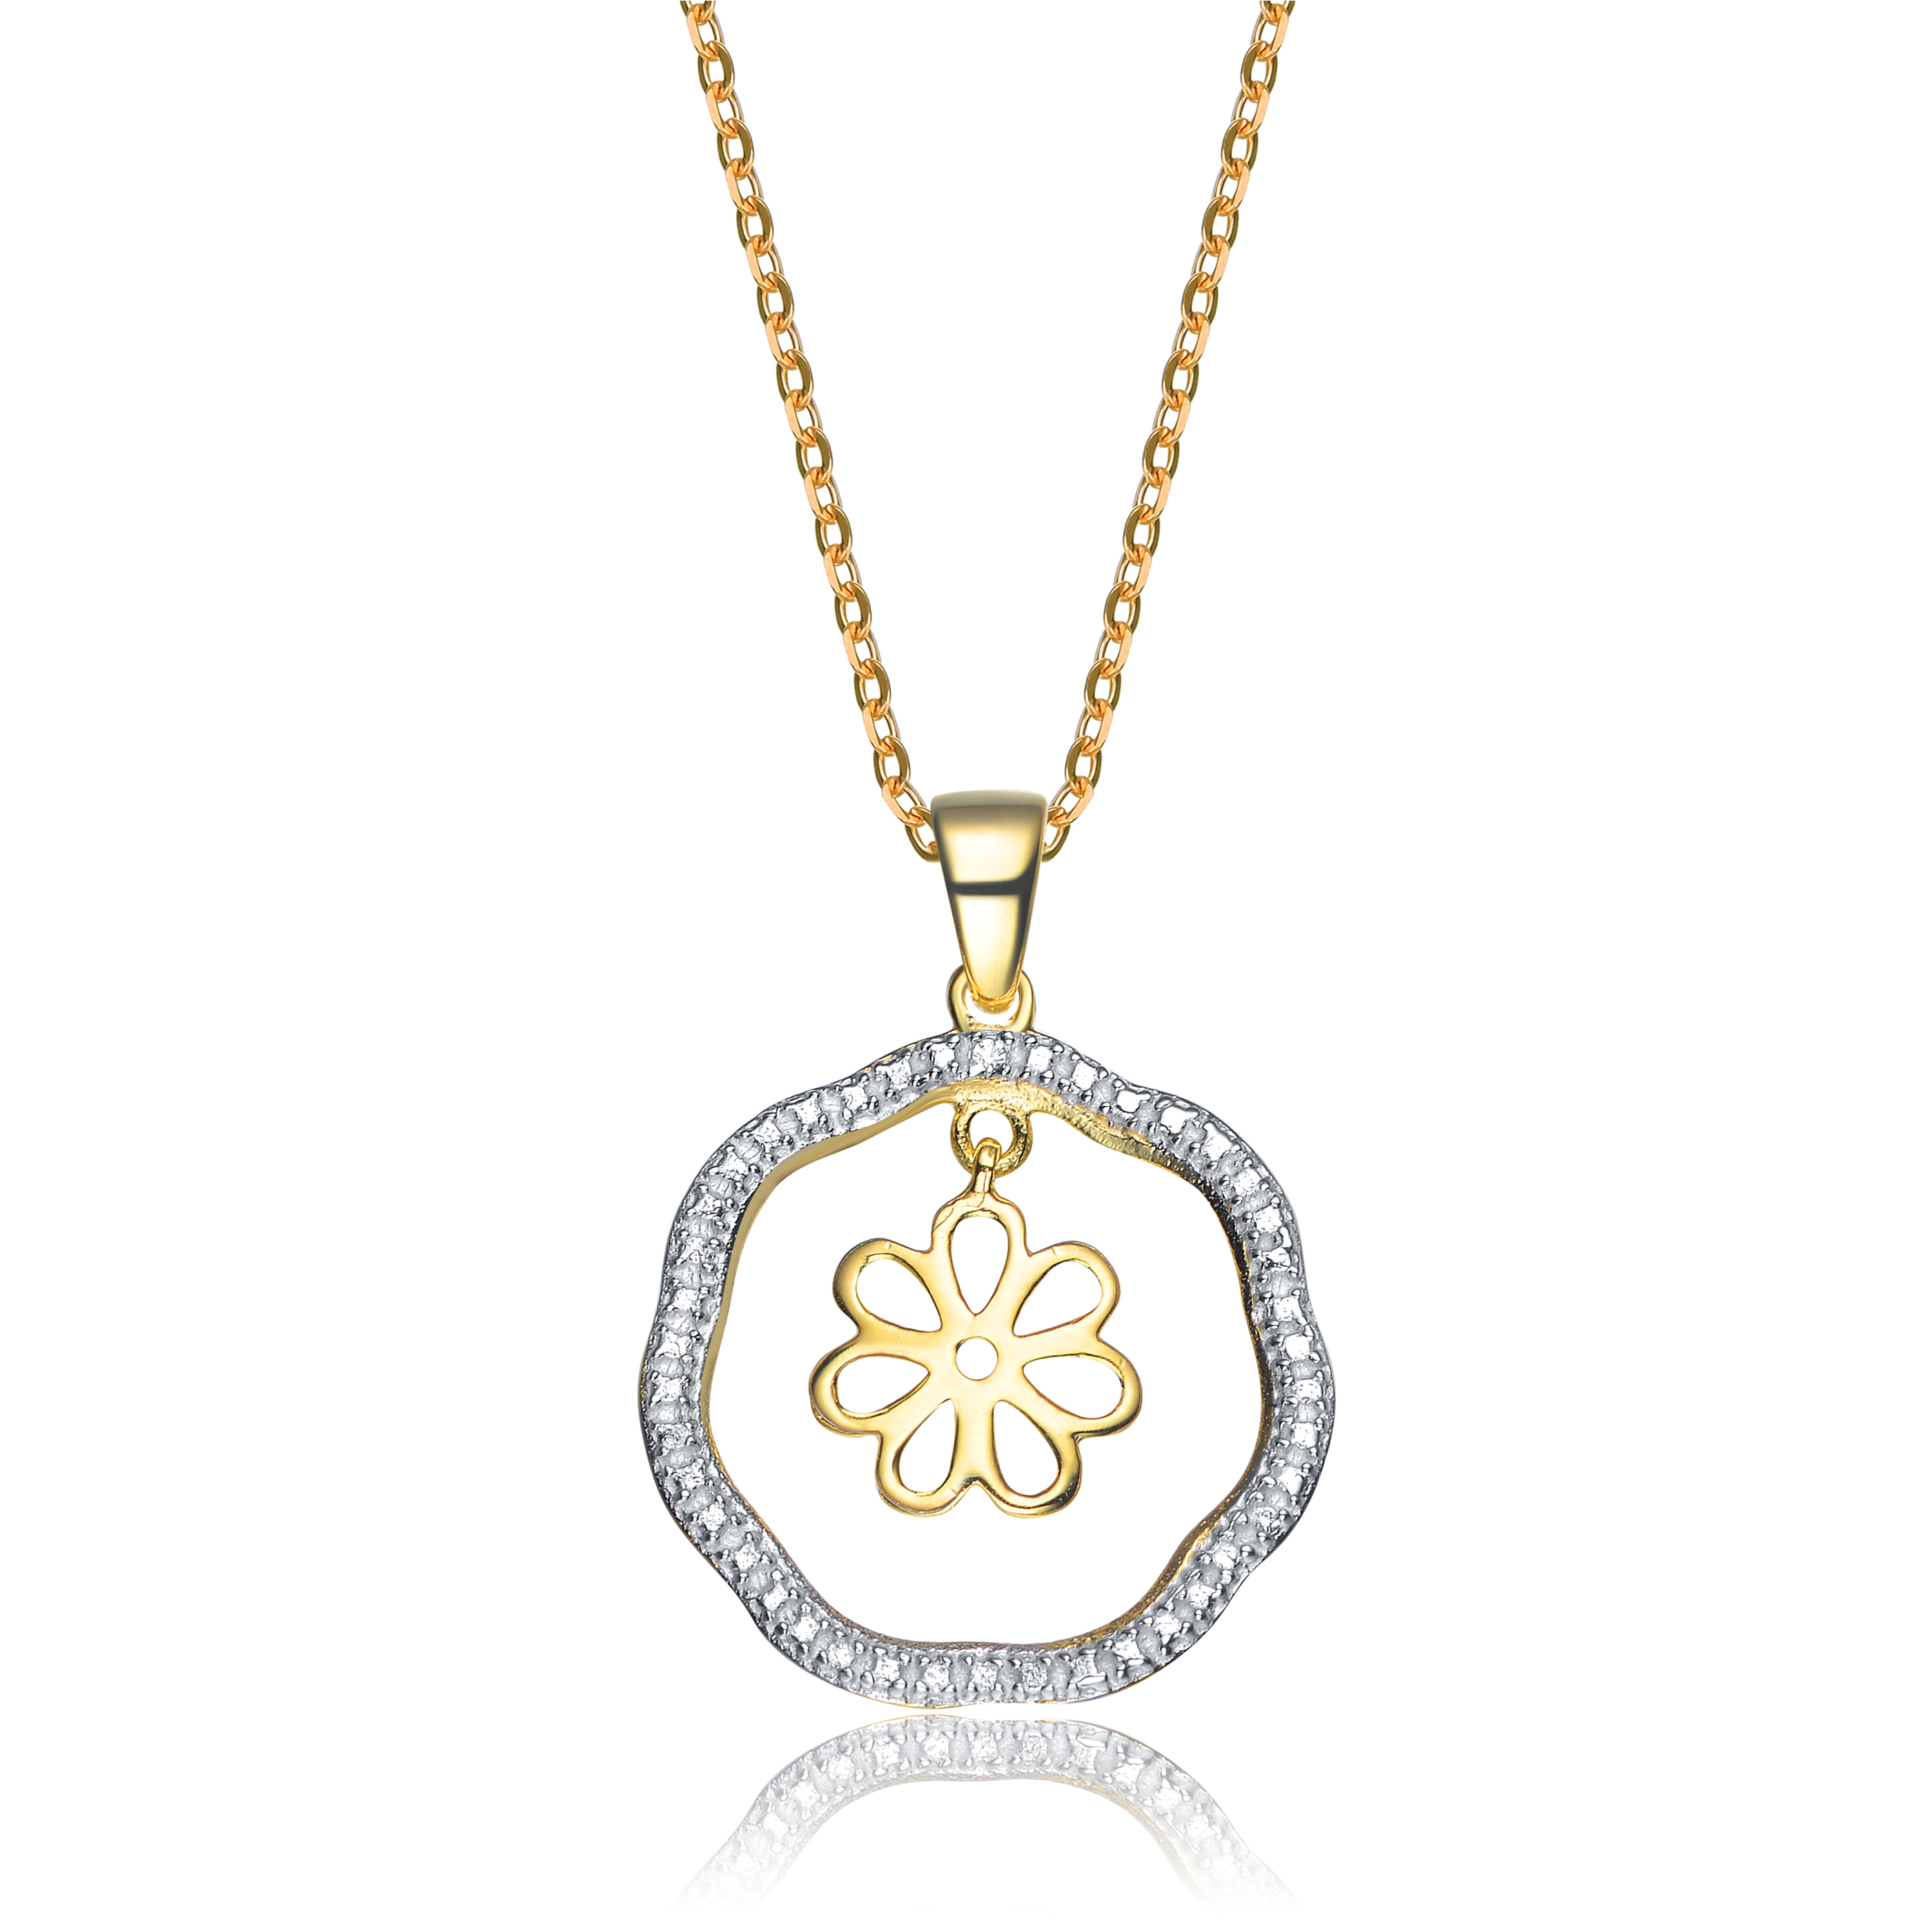 diamond round jewelry caresse cartier necklace white watches orchid dorchid gold pendant and d free onyx overstock es today product shipping